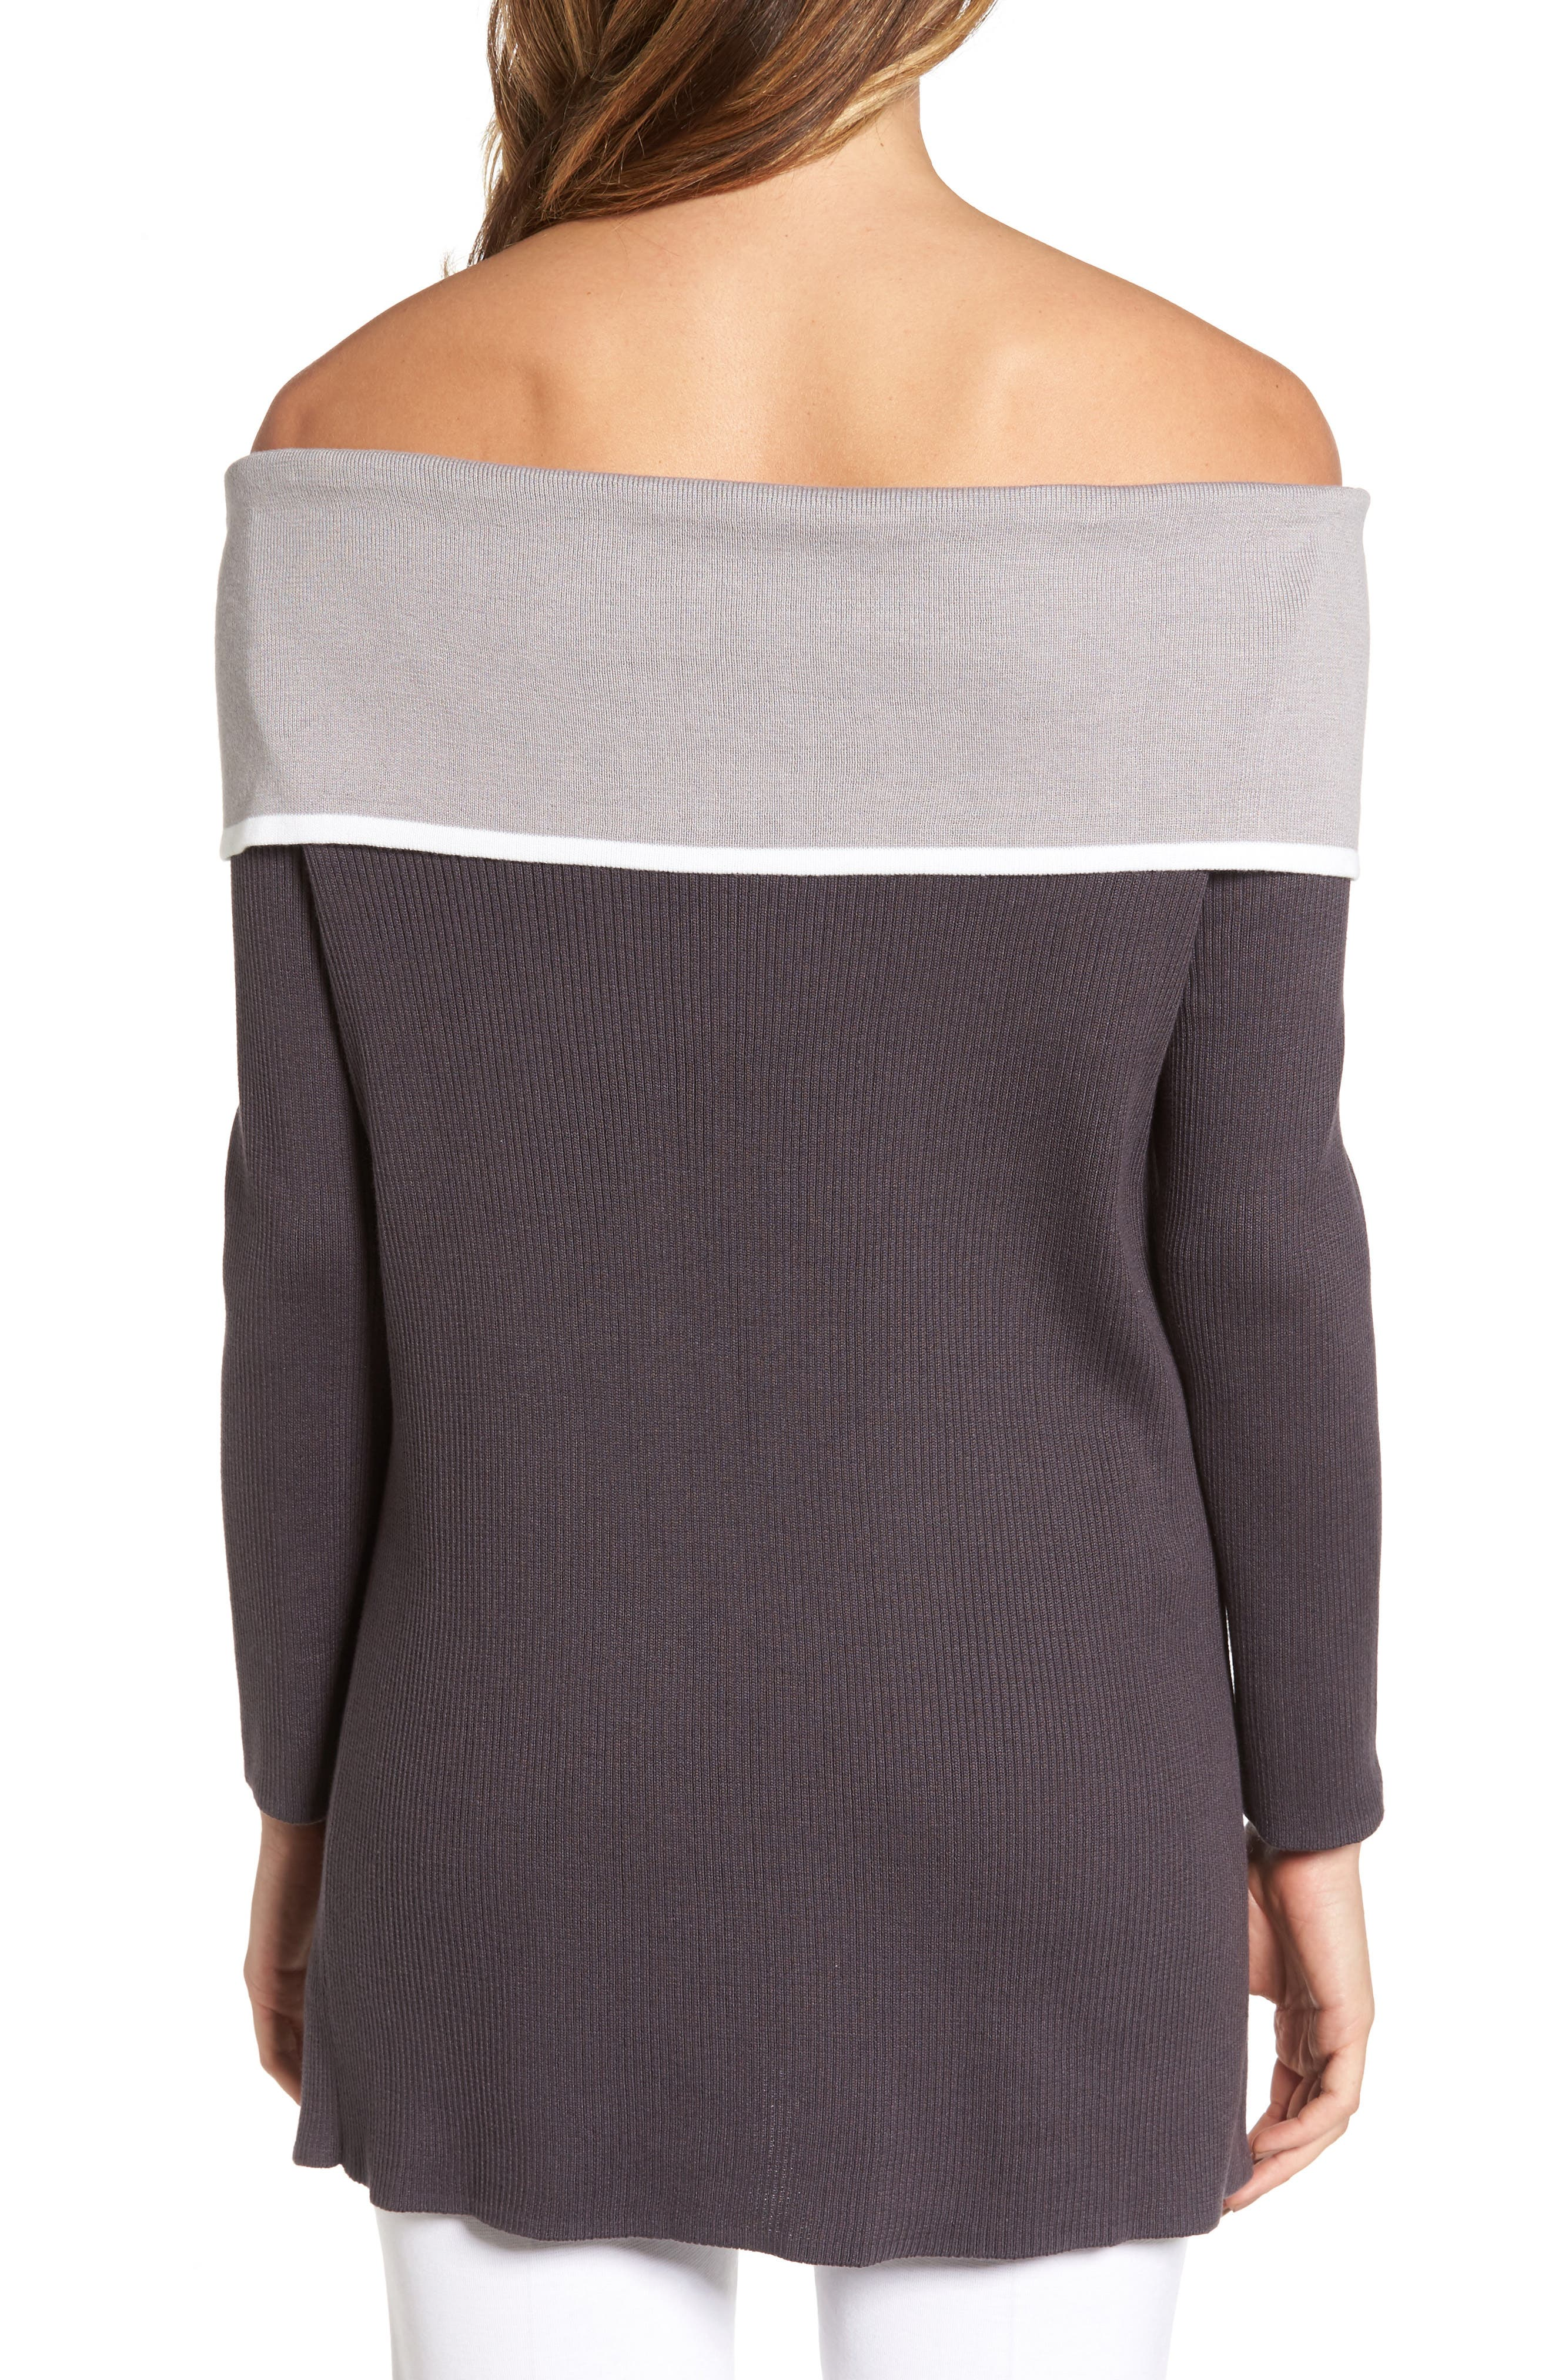 Off the Shoulder Tunic,                             Alternate thumbnail 2, color,                             Granite/ Sterling/ Ivory